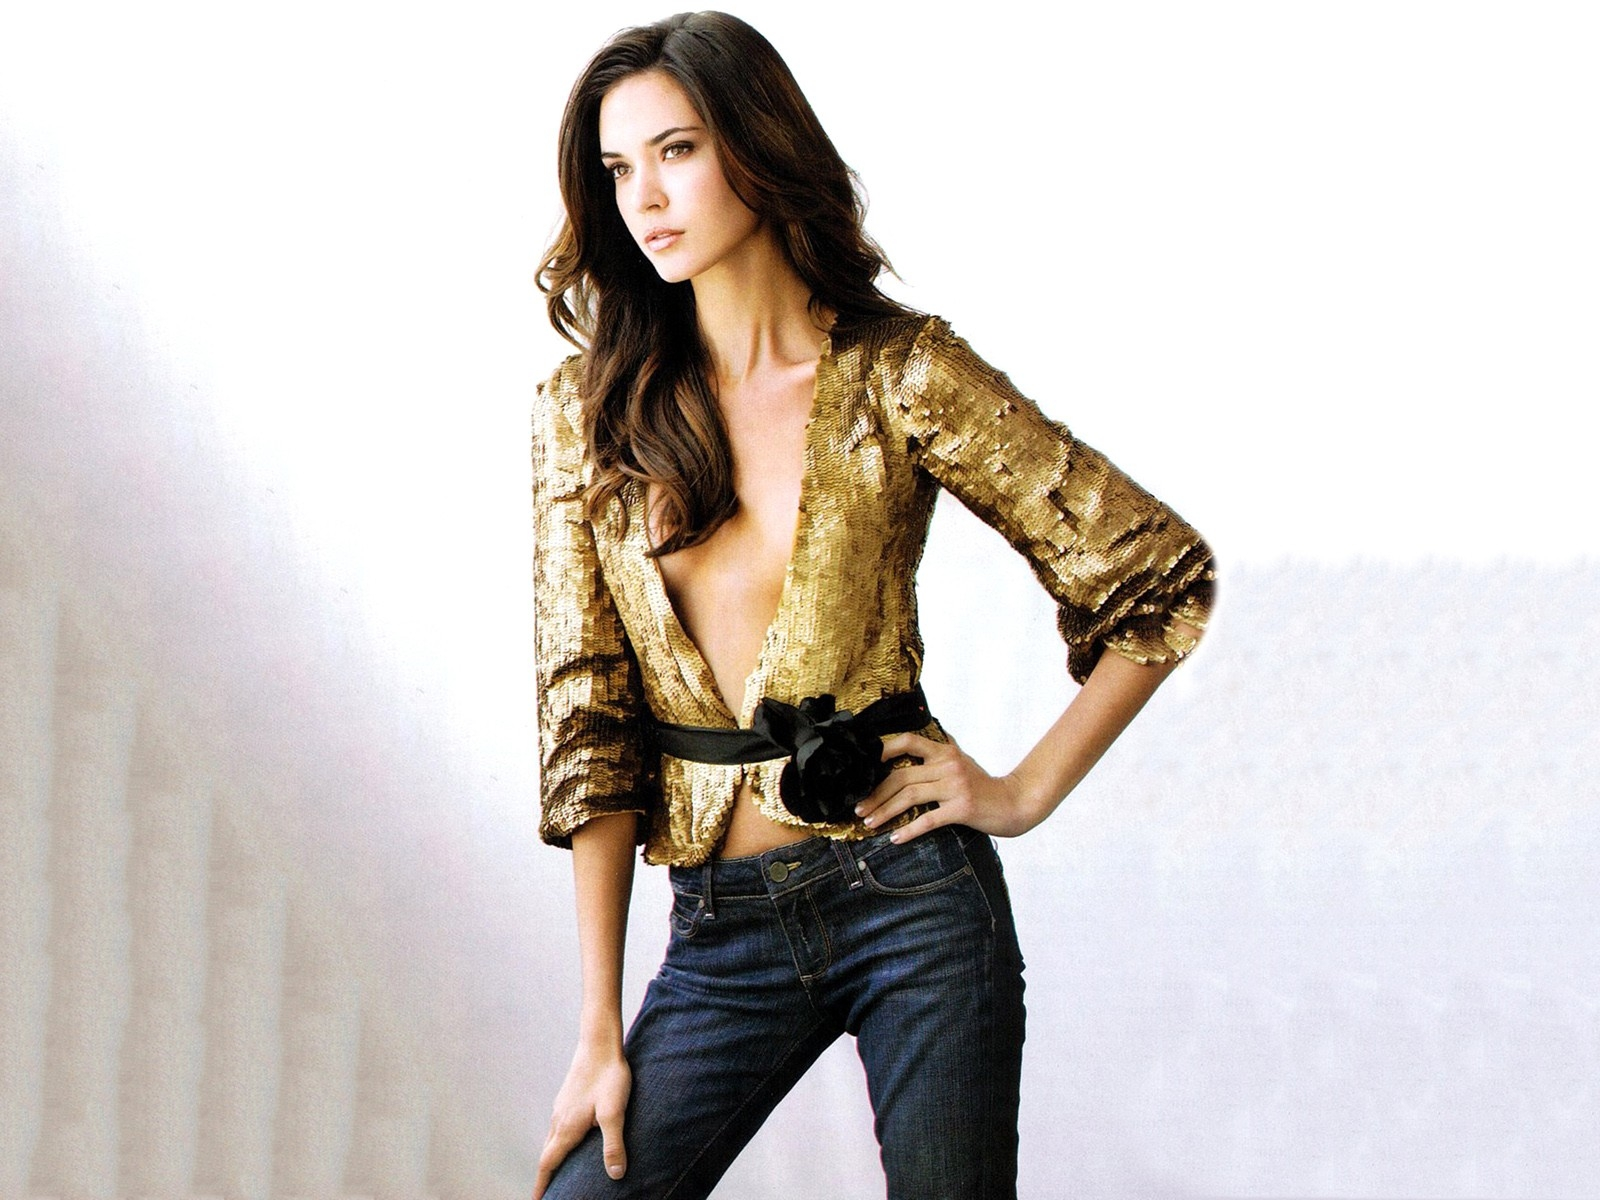 1600x1200 - Odette Annable Wallpapers 23